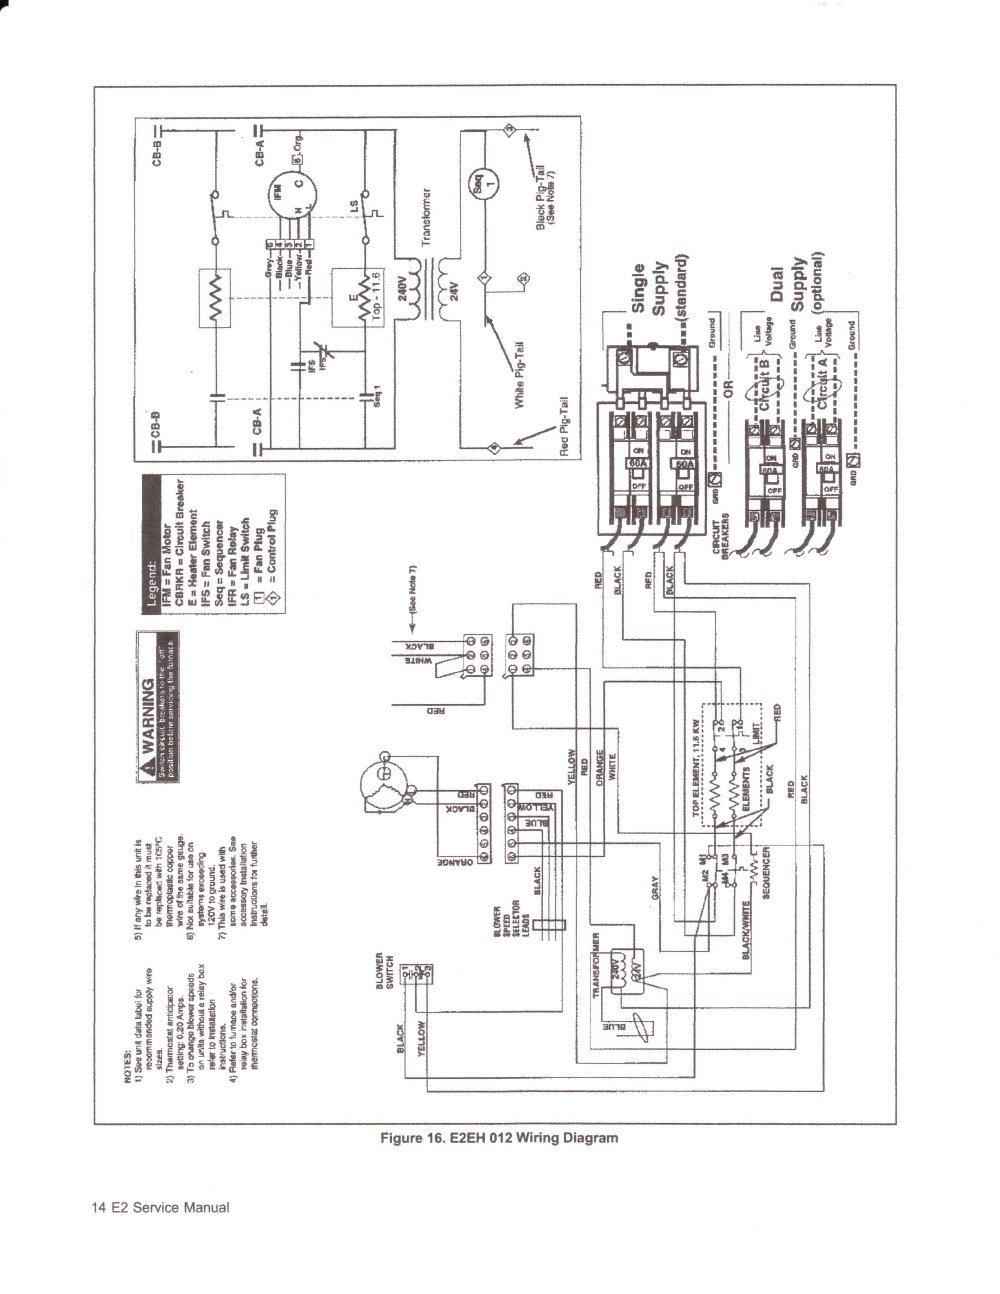 medium resolution of electric furnace thermostat wiring diagram free picture wiring mortex furnace wiring diagram